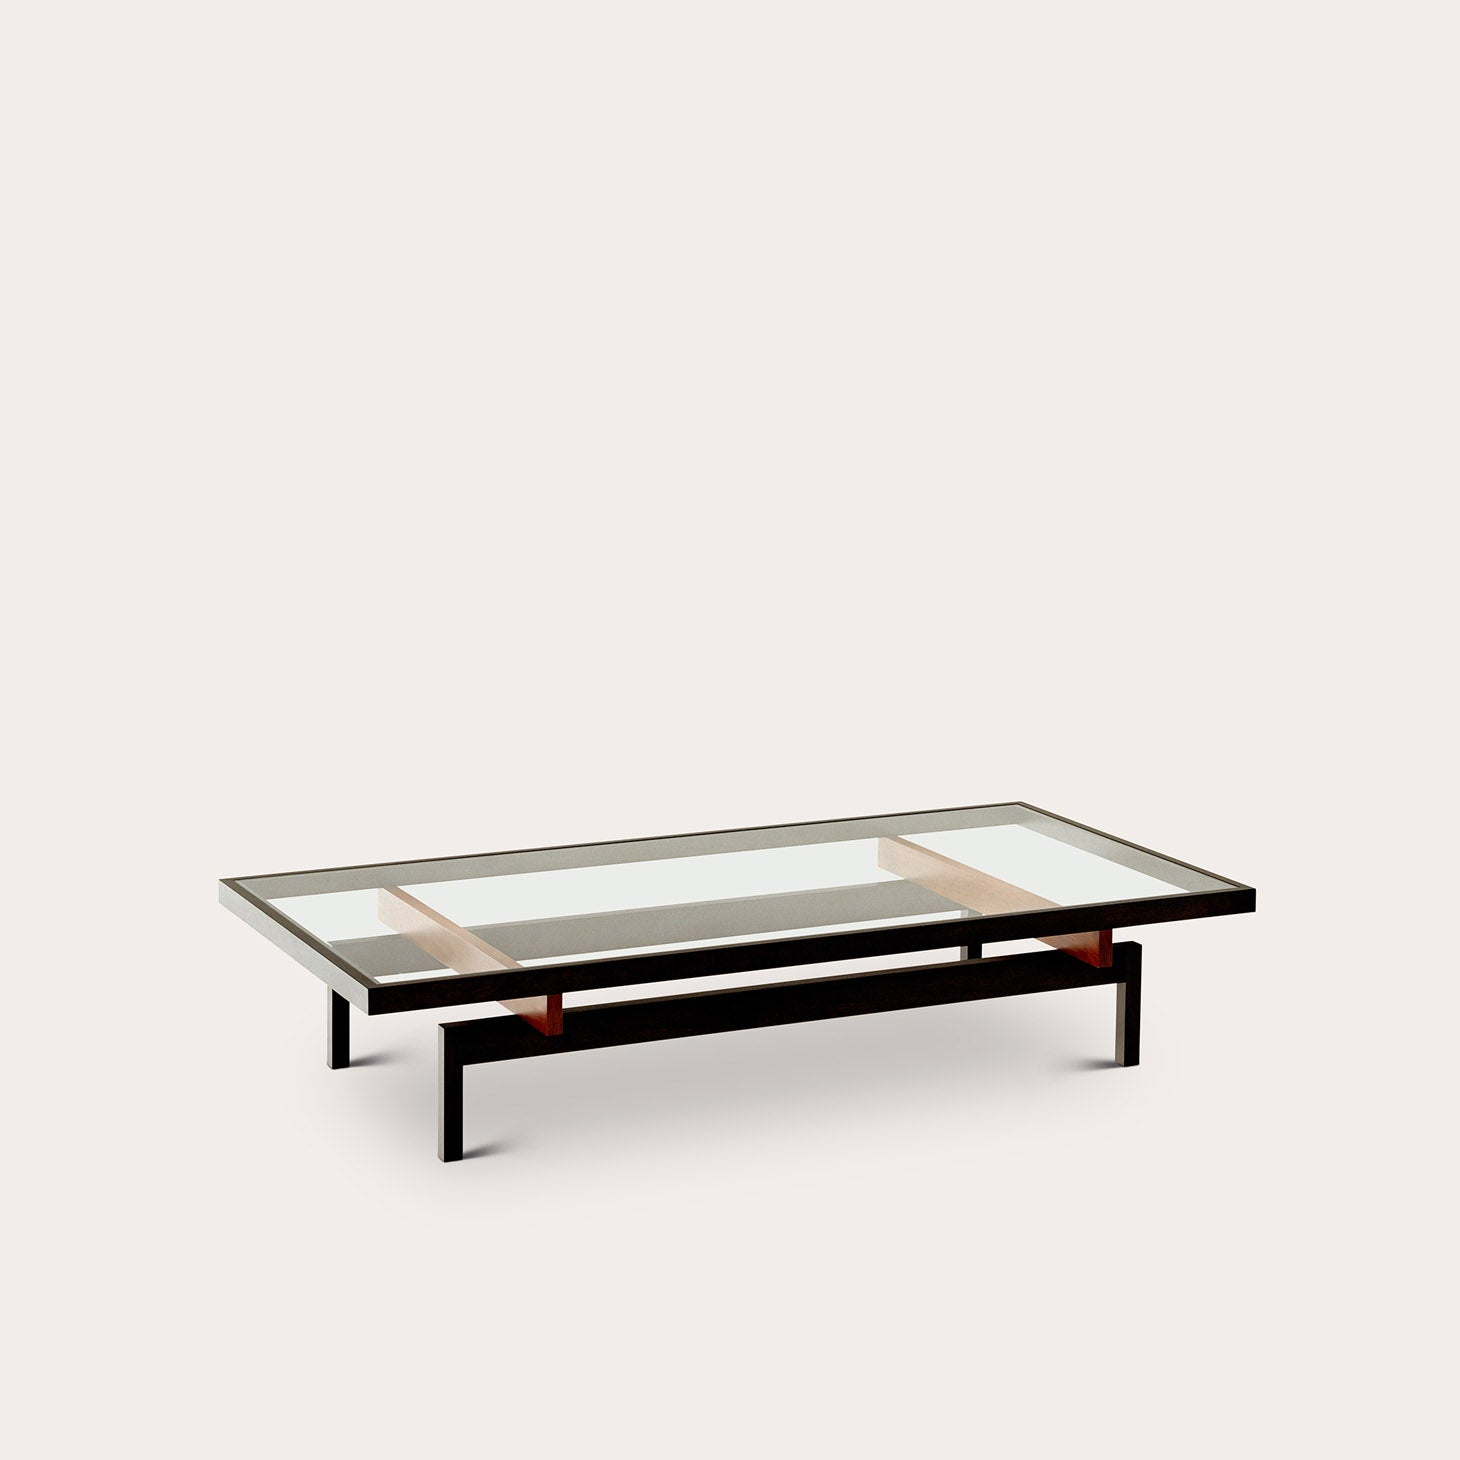 Duas Cores Tables Branco&Preto Designer Furniture Sku: 003-230-10093